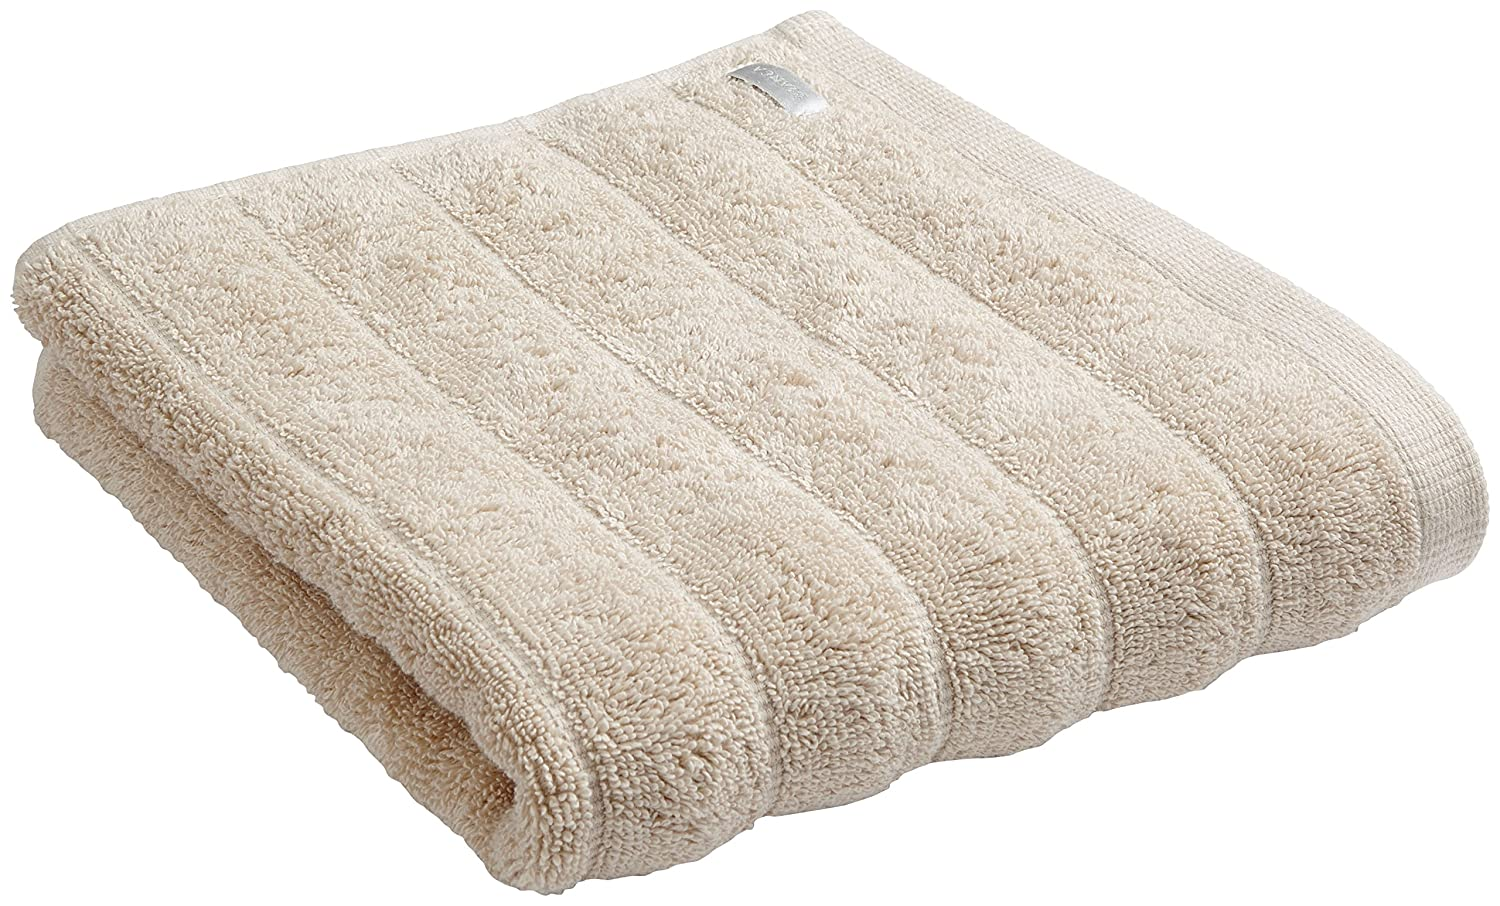 Bianca Ribbed Hand Towel, White Turner Bianca TW/39041/R/HT/WH